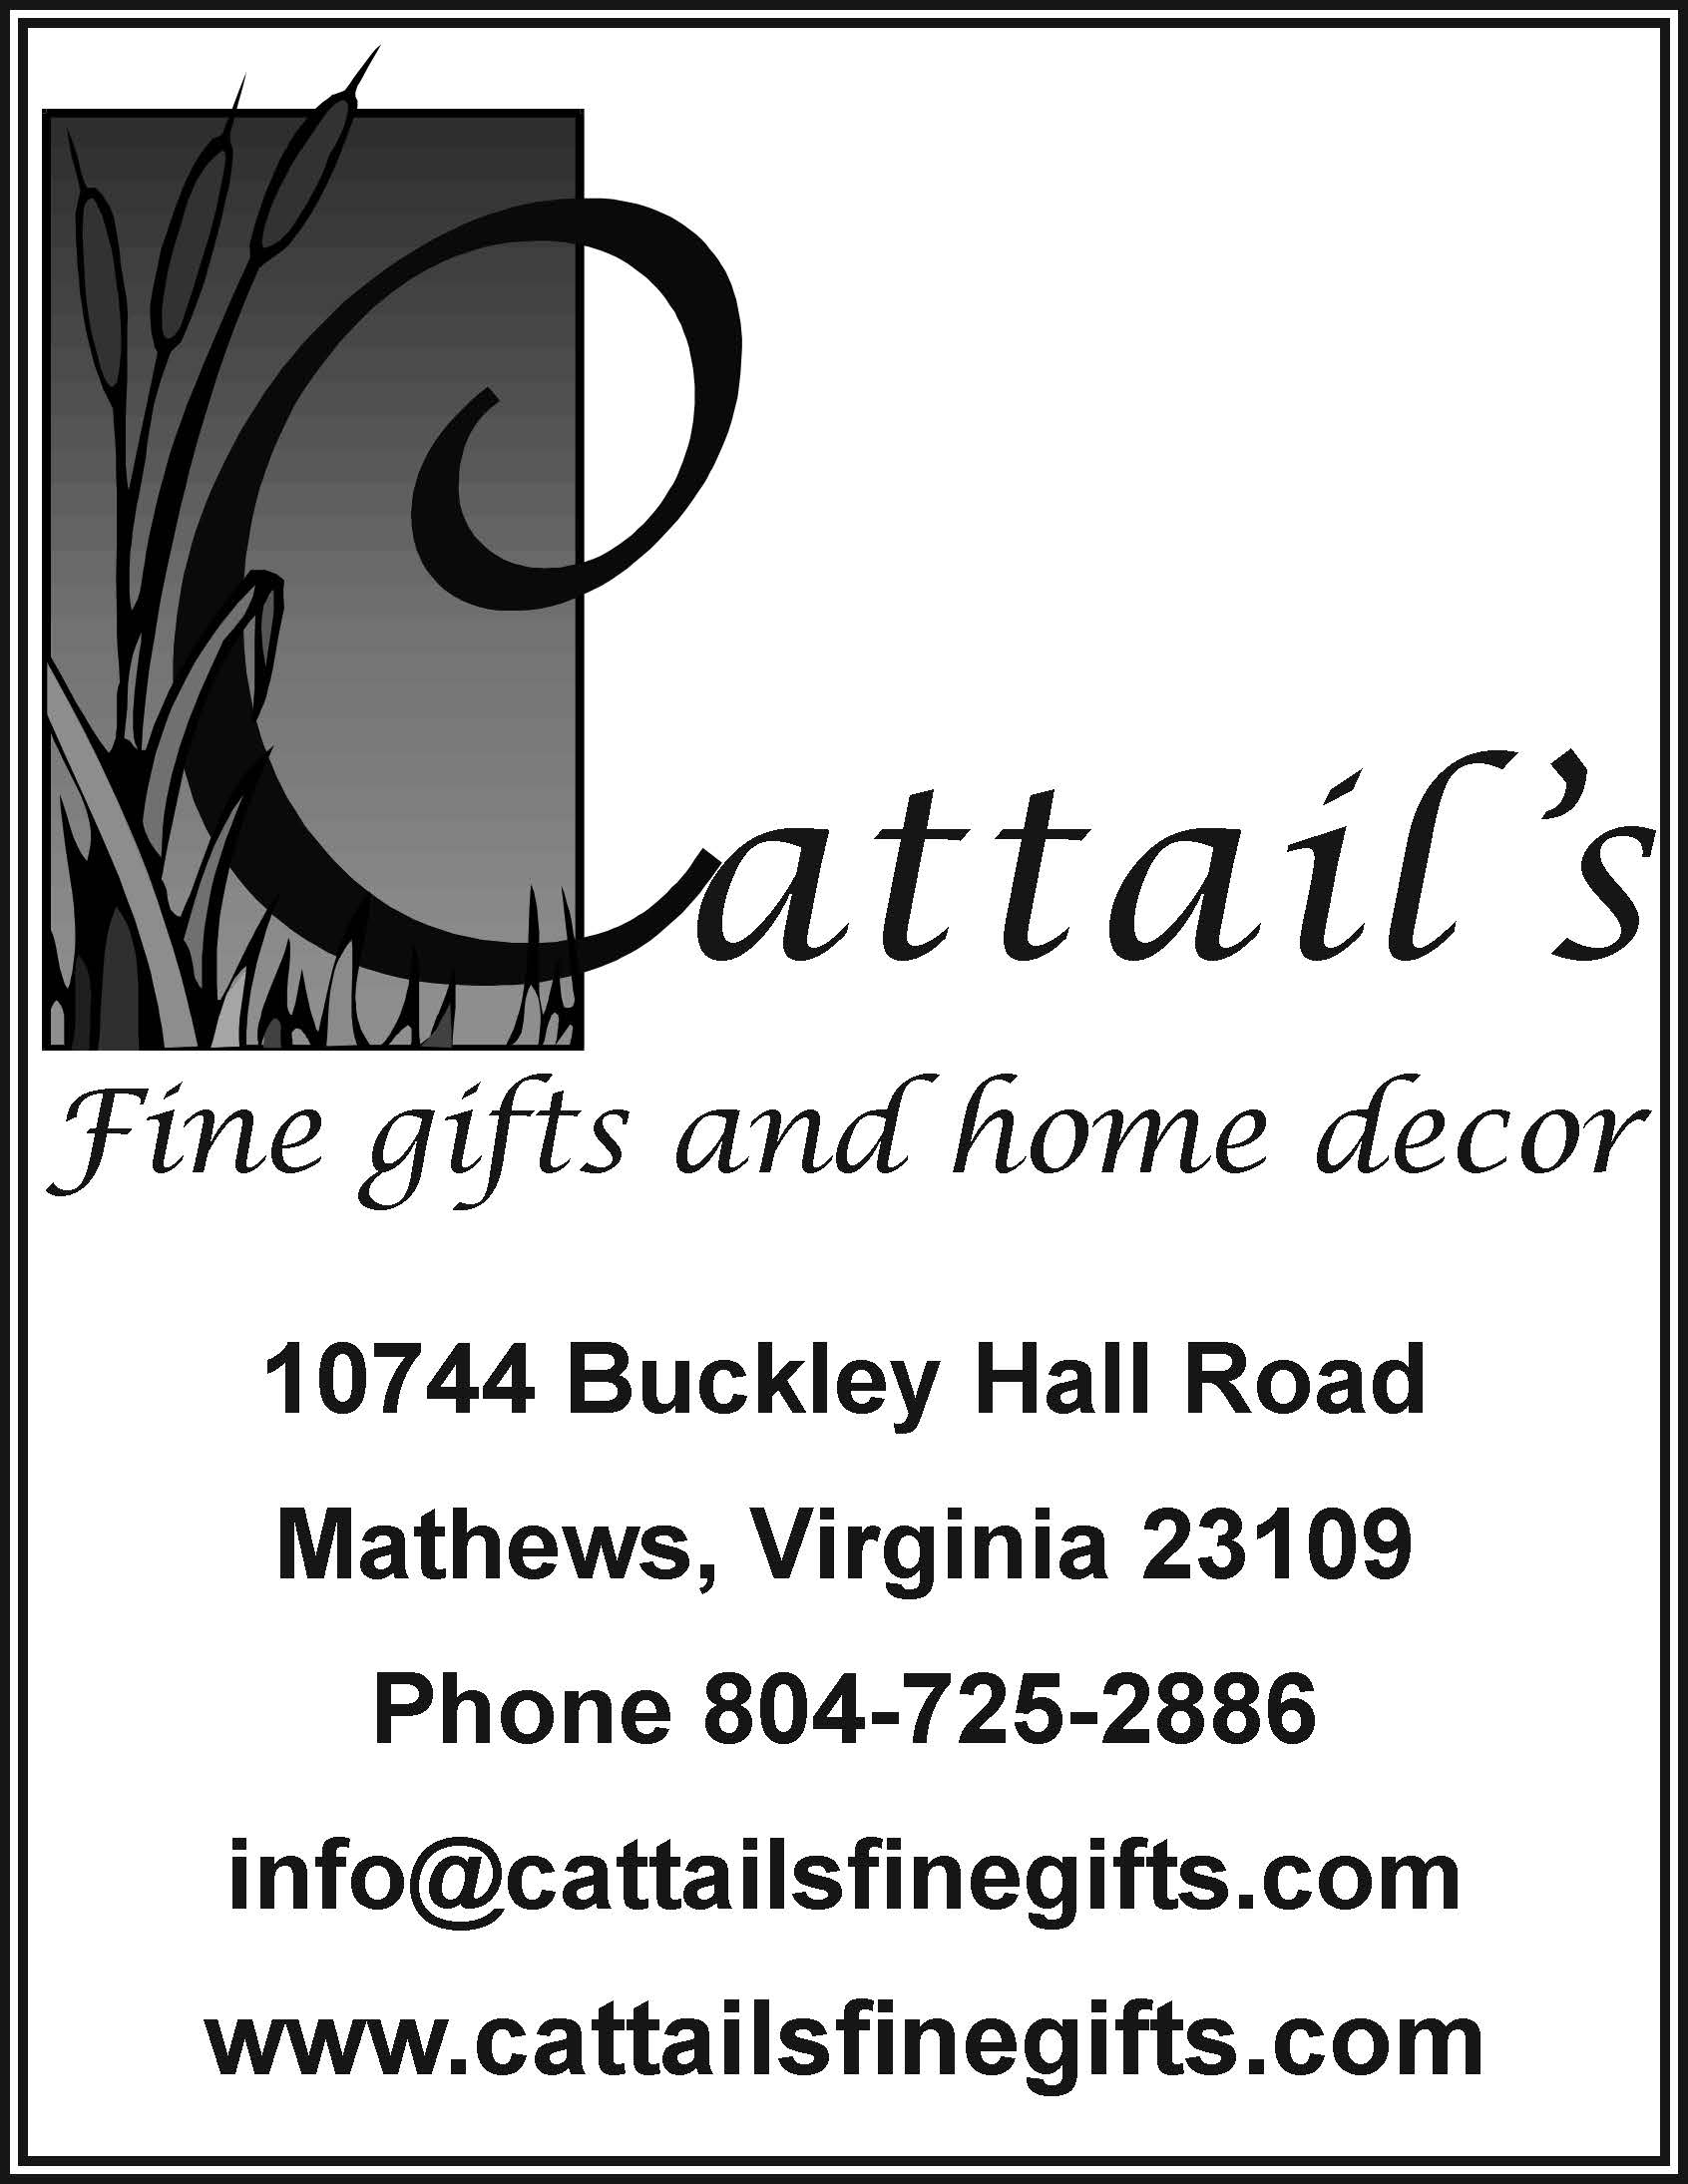 Cattails BW Ad